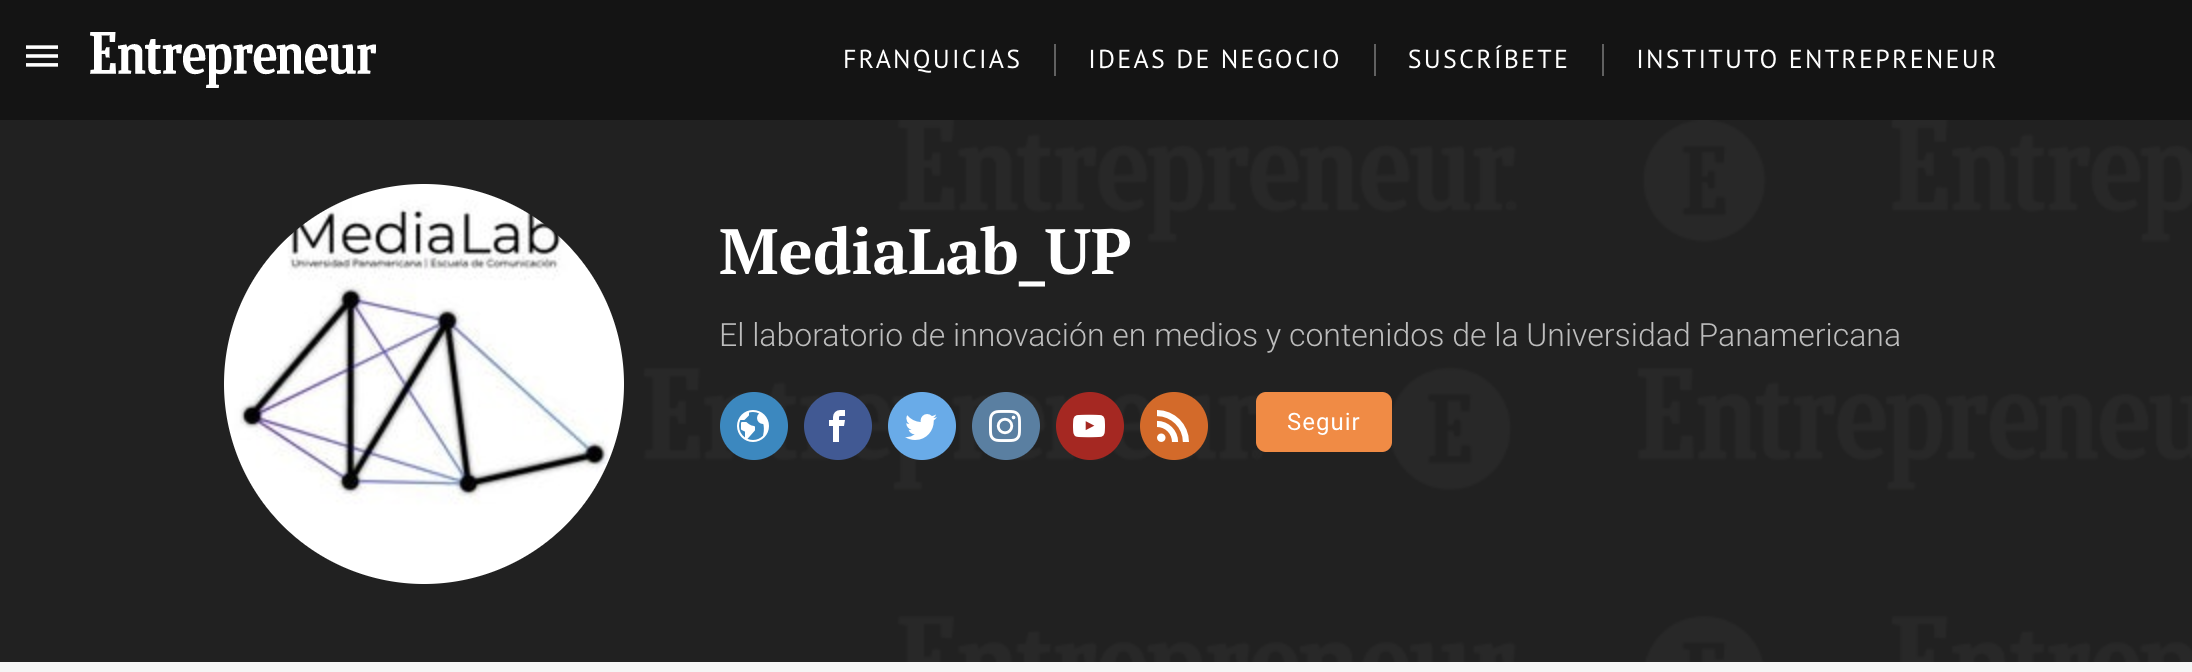 Entrepreneur media Lab UP